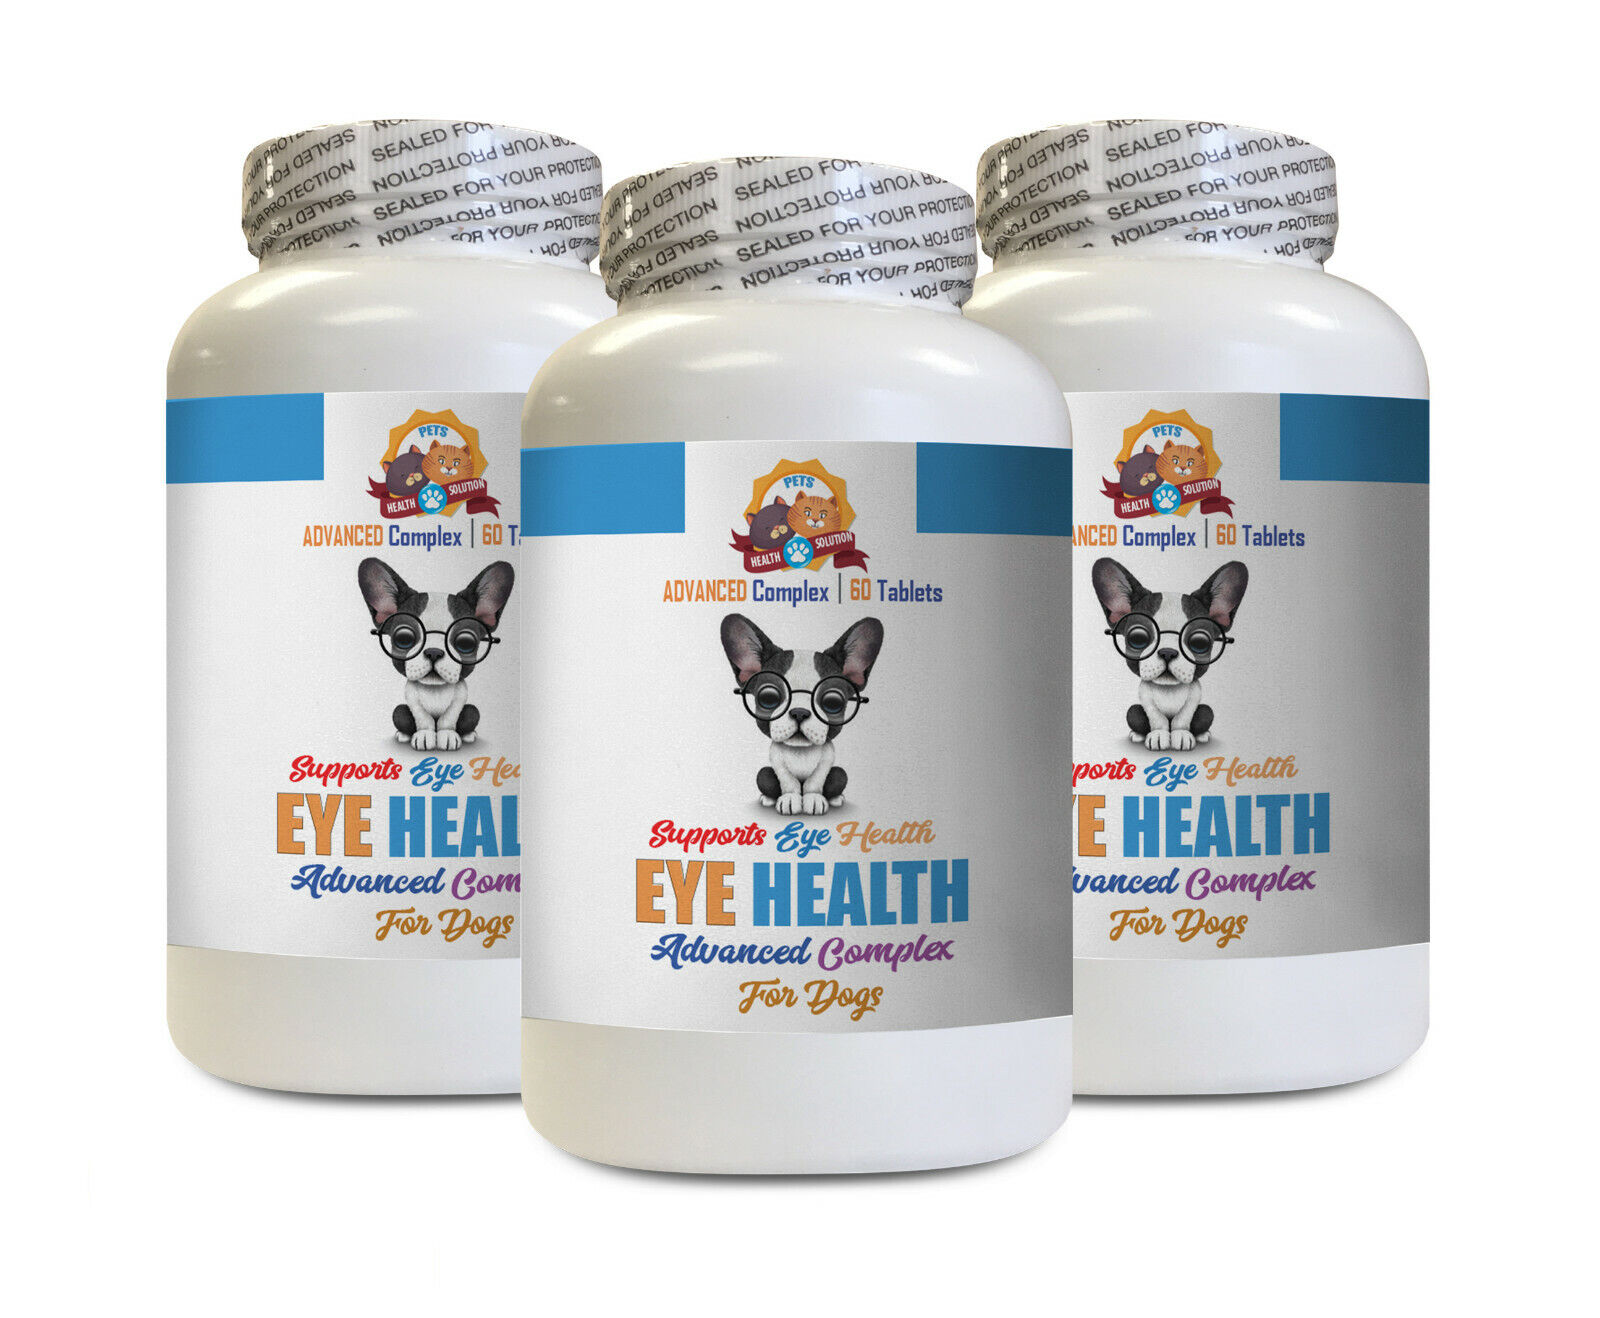 Dog eye vitamins support - DOG EYE HEALTH SOLUTION - eye support for dogs 3B